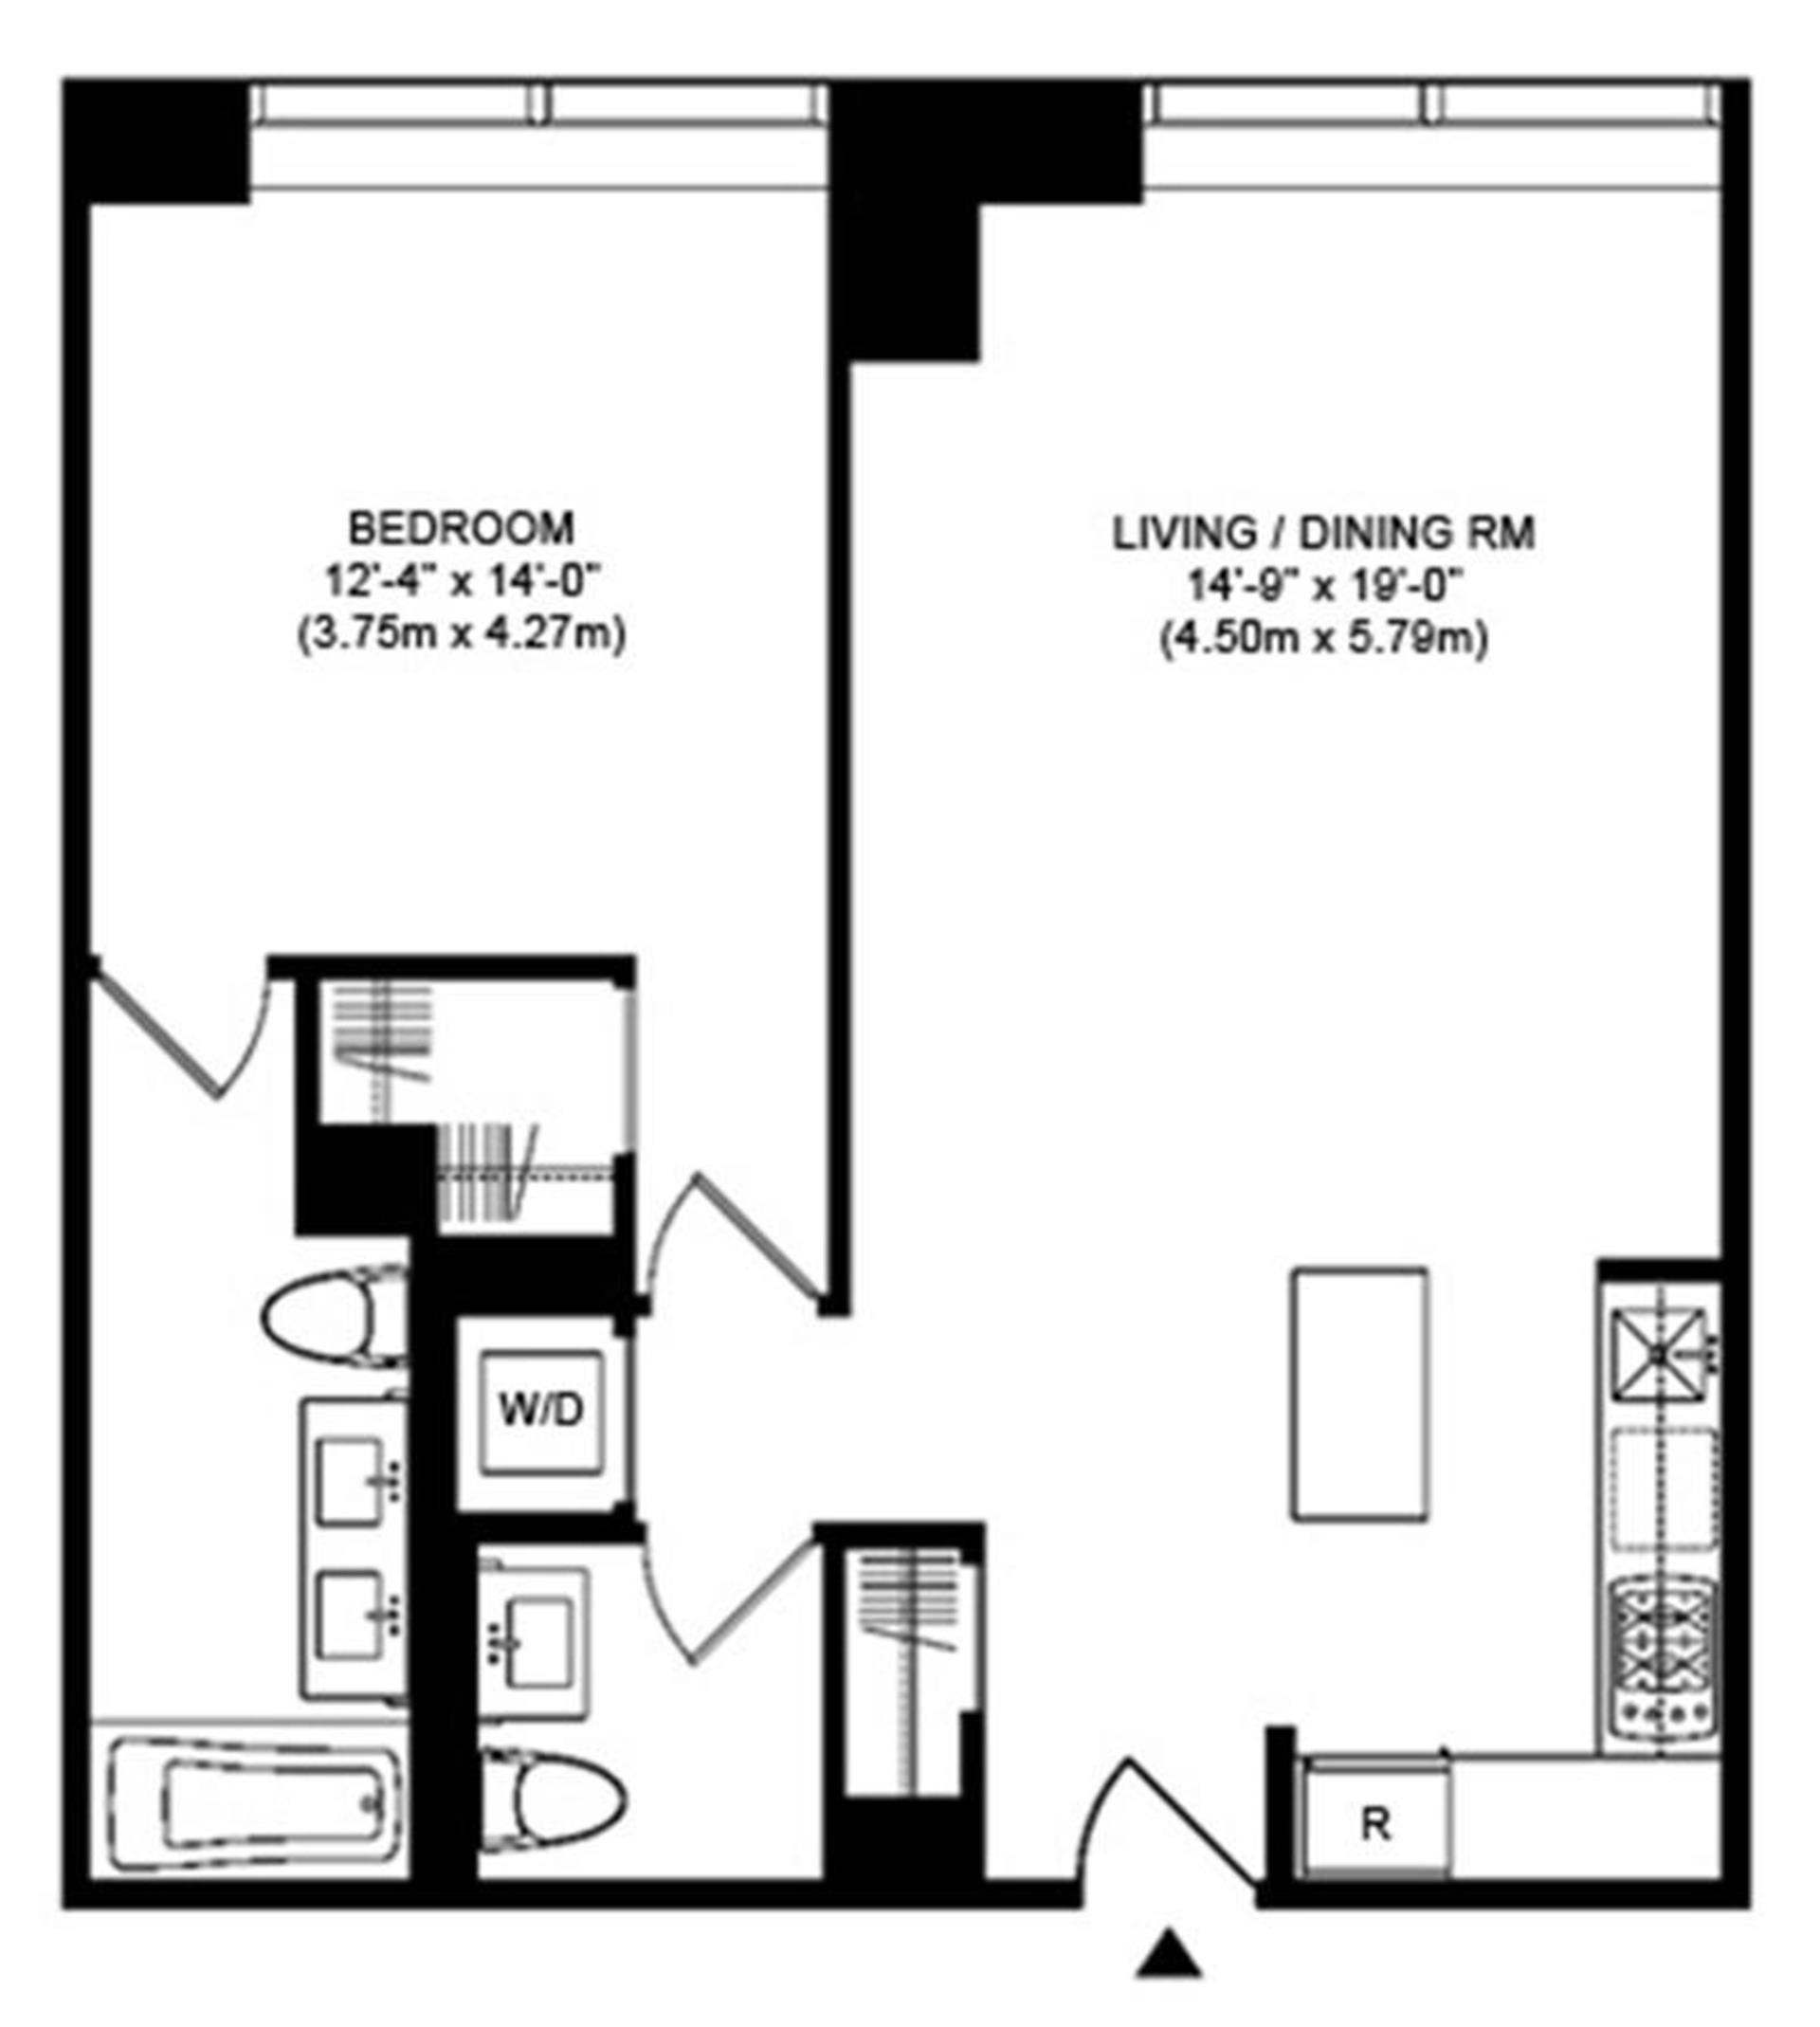 Floor plan of 75 Wall St, 24K - Financial District, New York